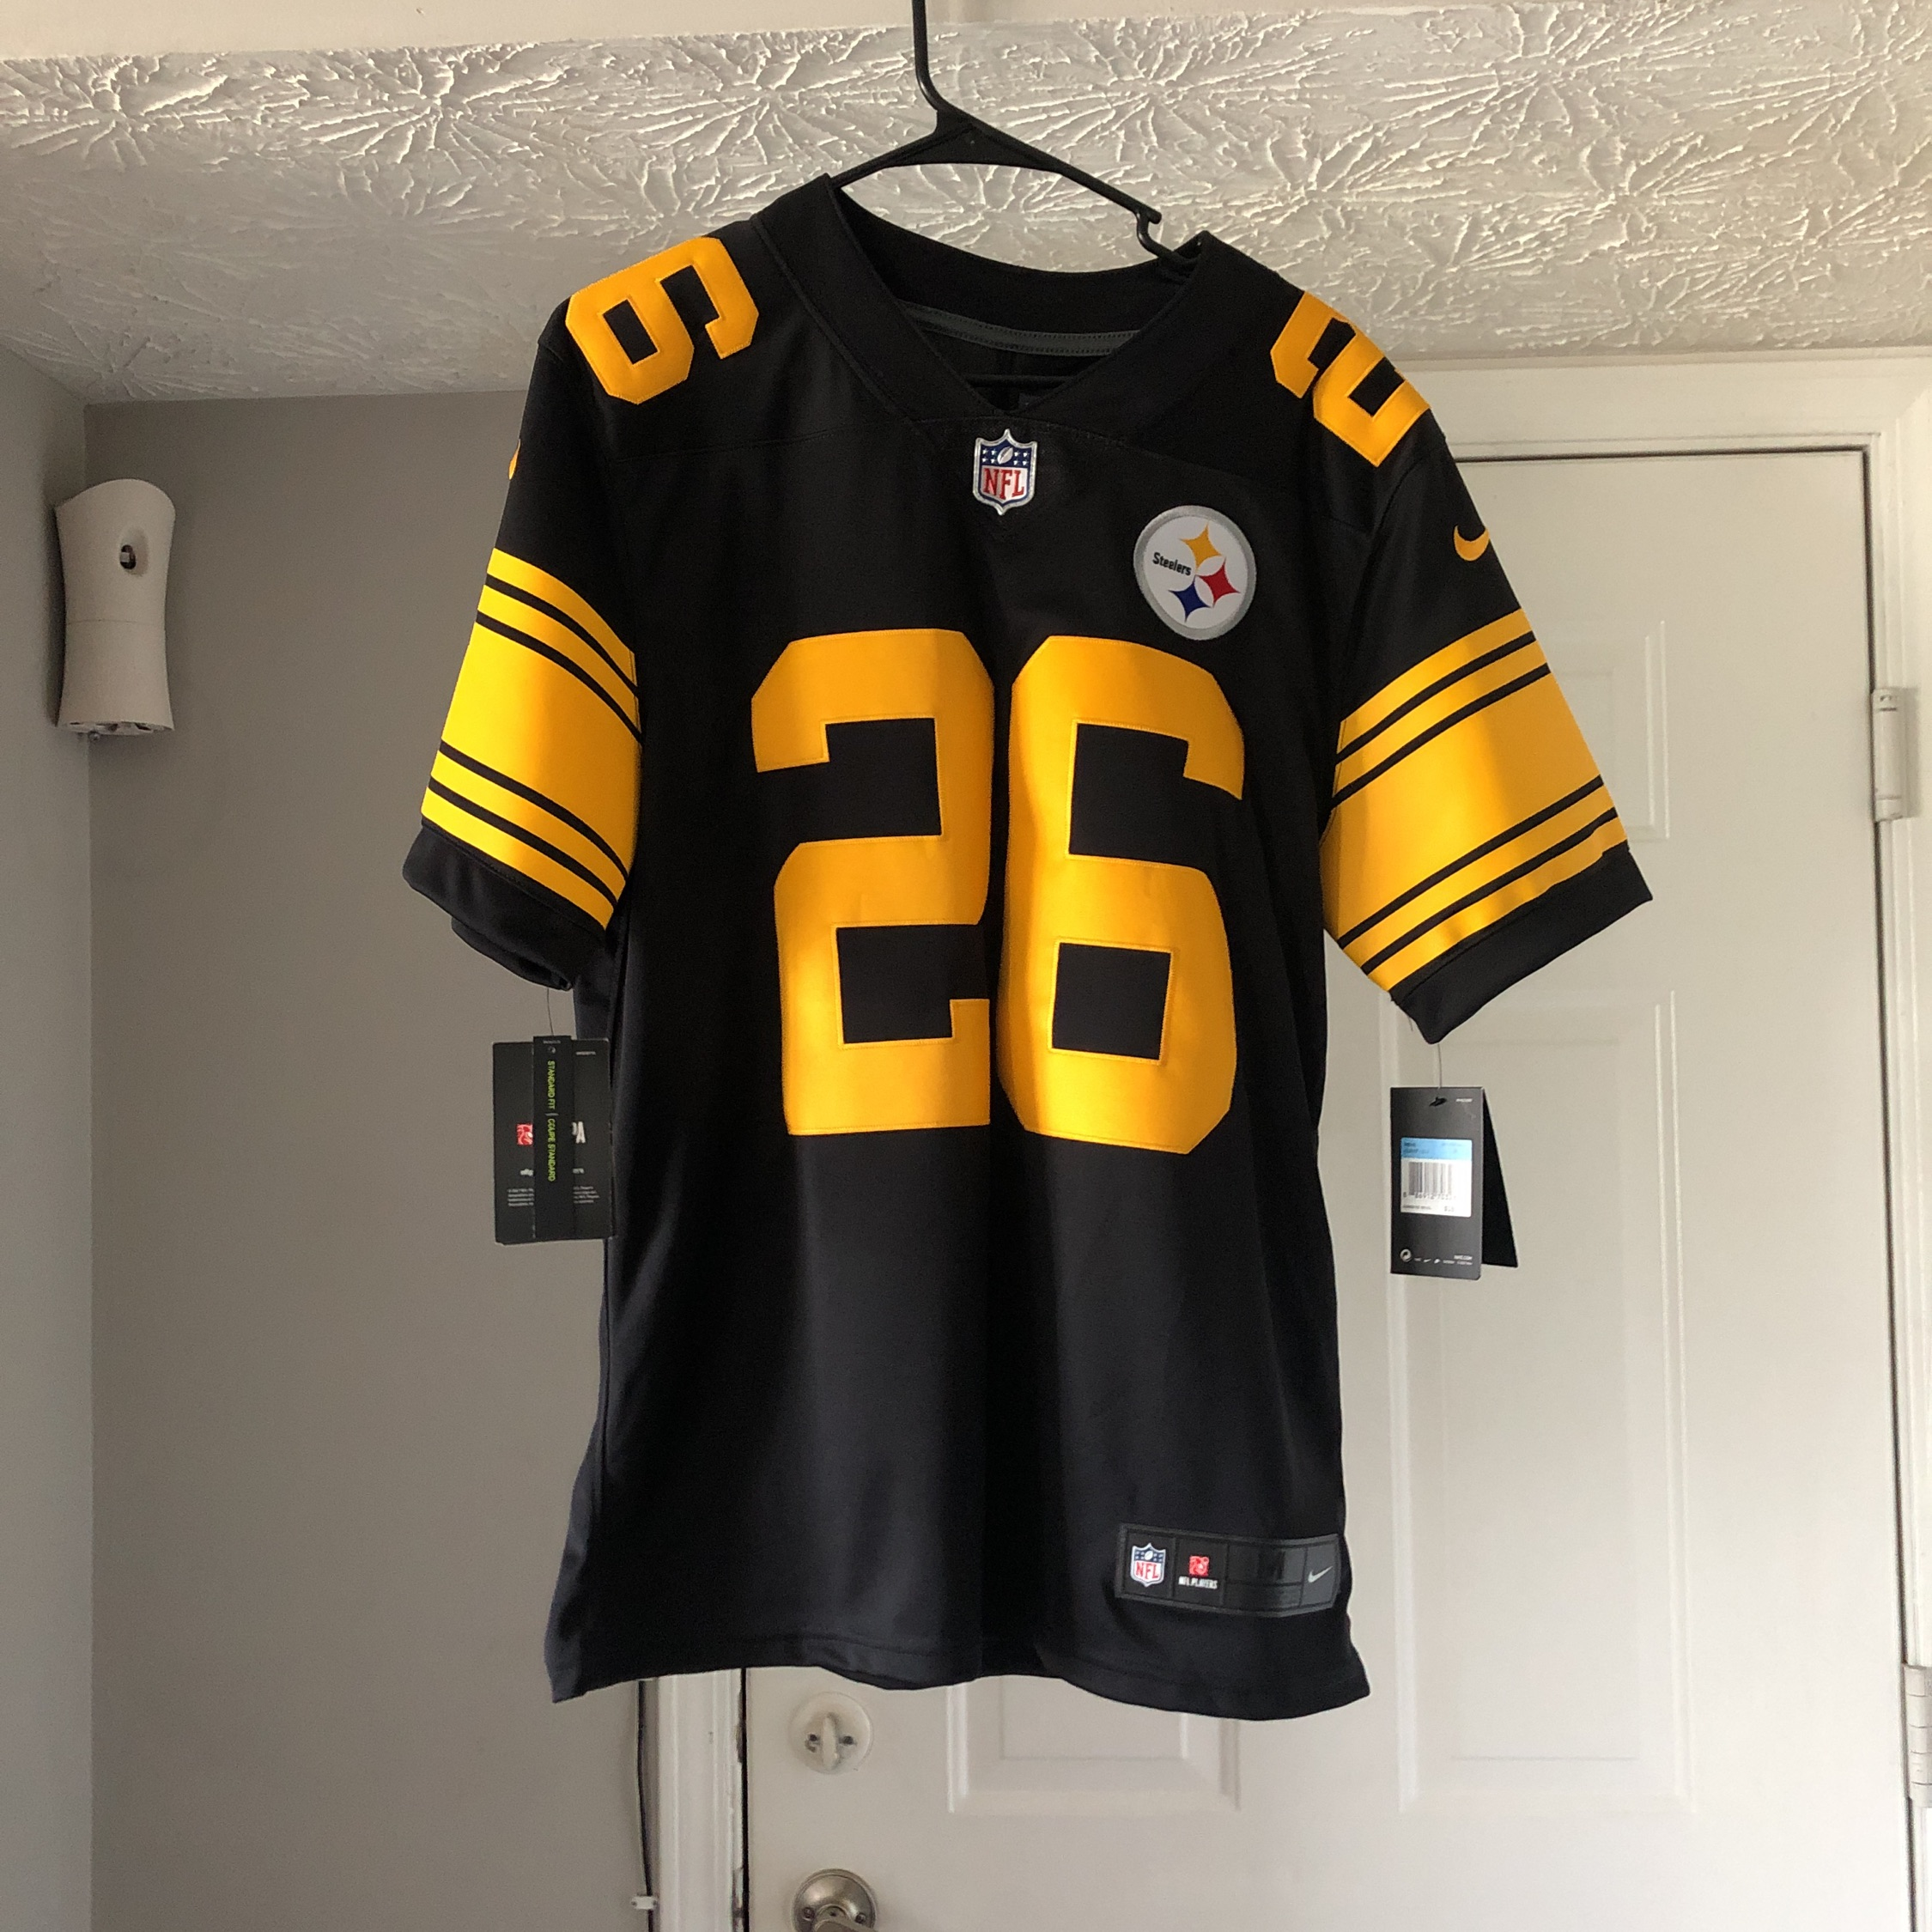 timeless design dc6c5 2604b Le'veon Bell Nike Steelers Jersey